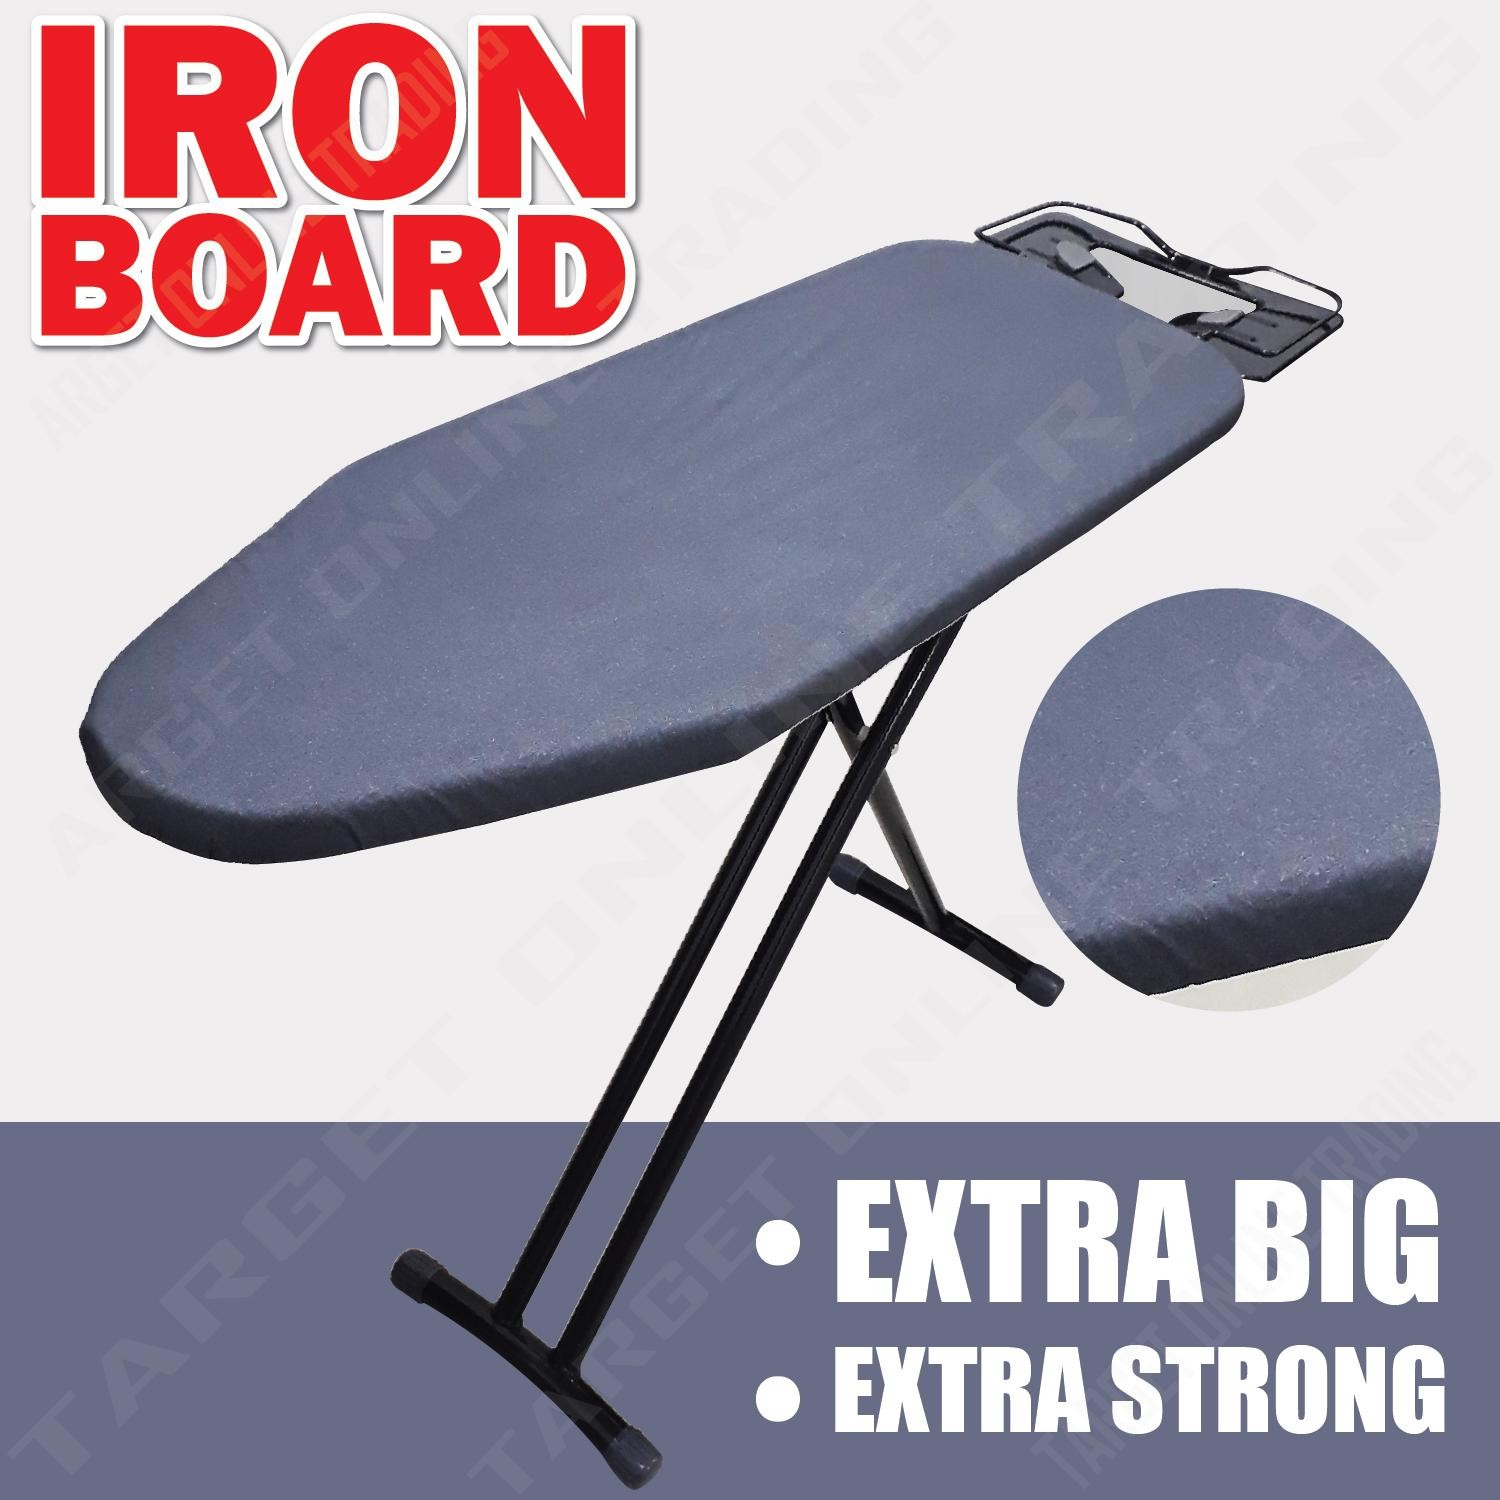 Fold Ironing Iron Board Non slip Cap Iron Rest Black Extra Big Strong